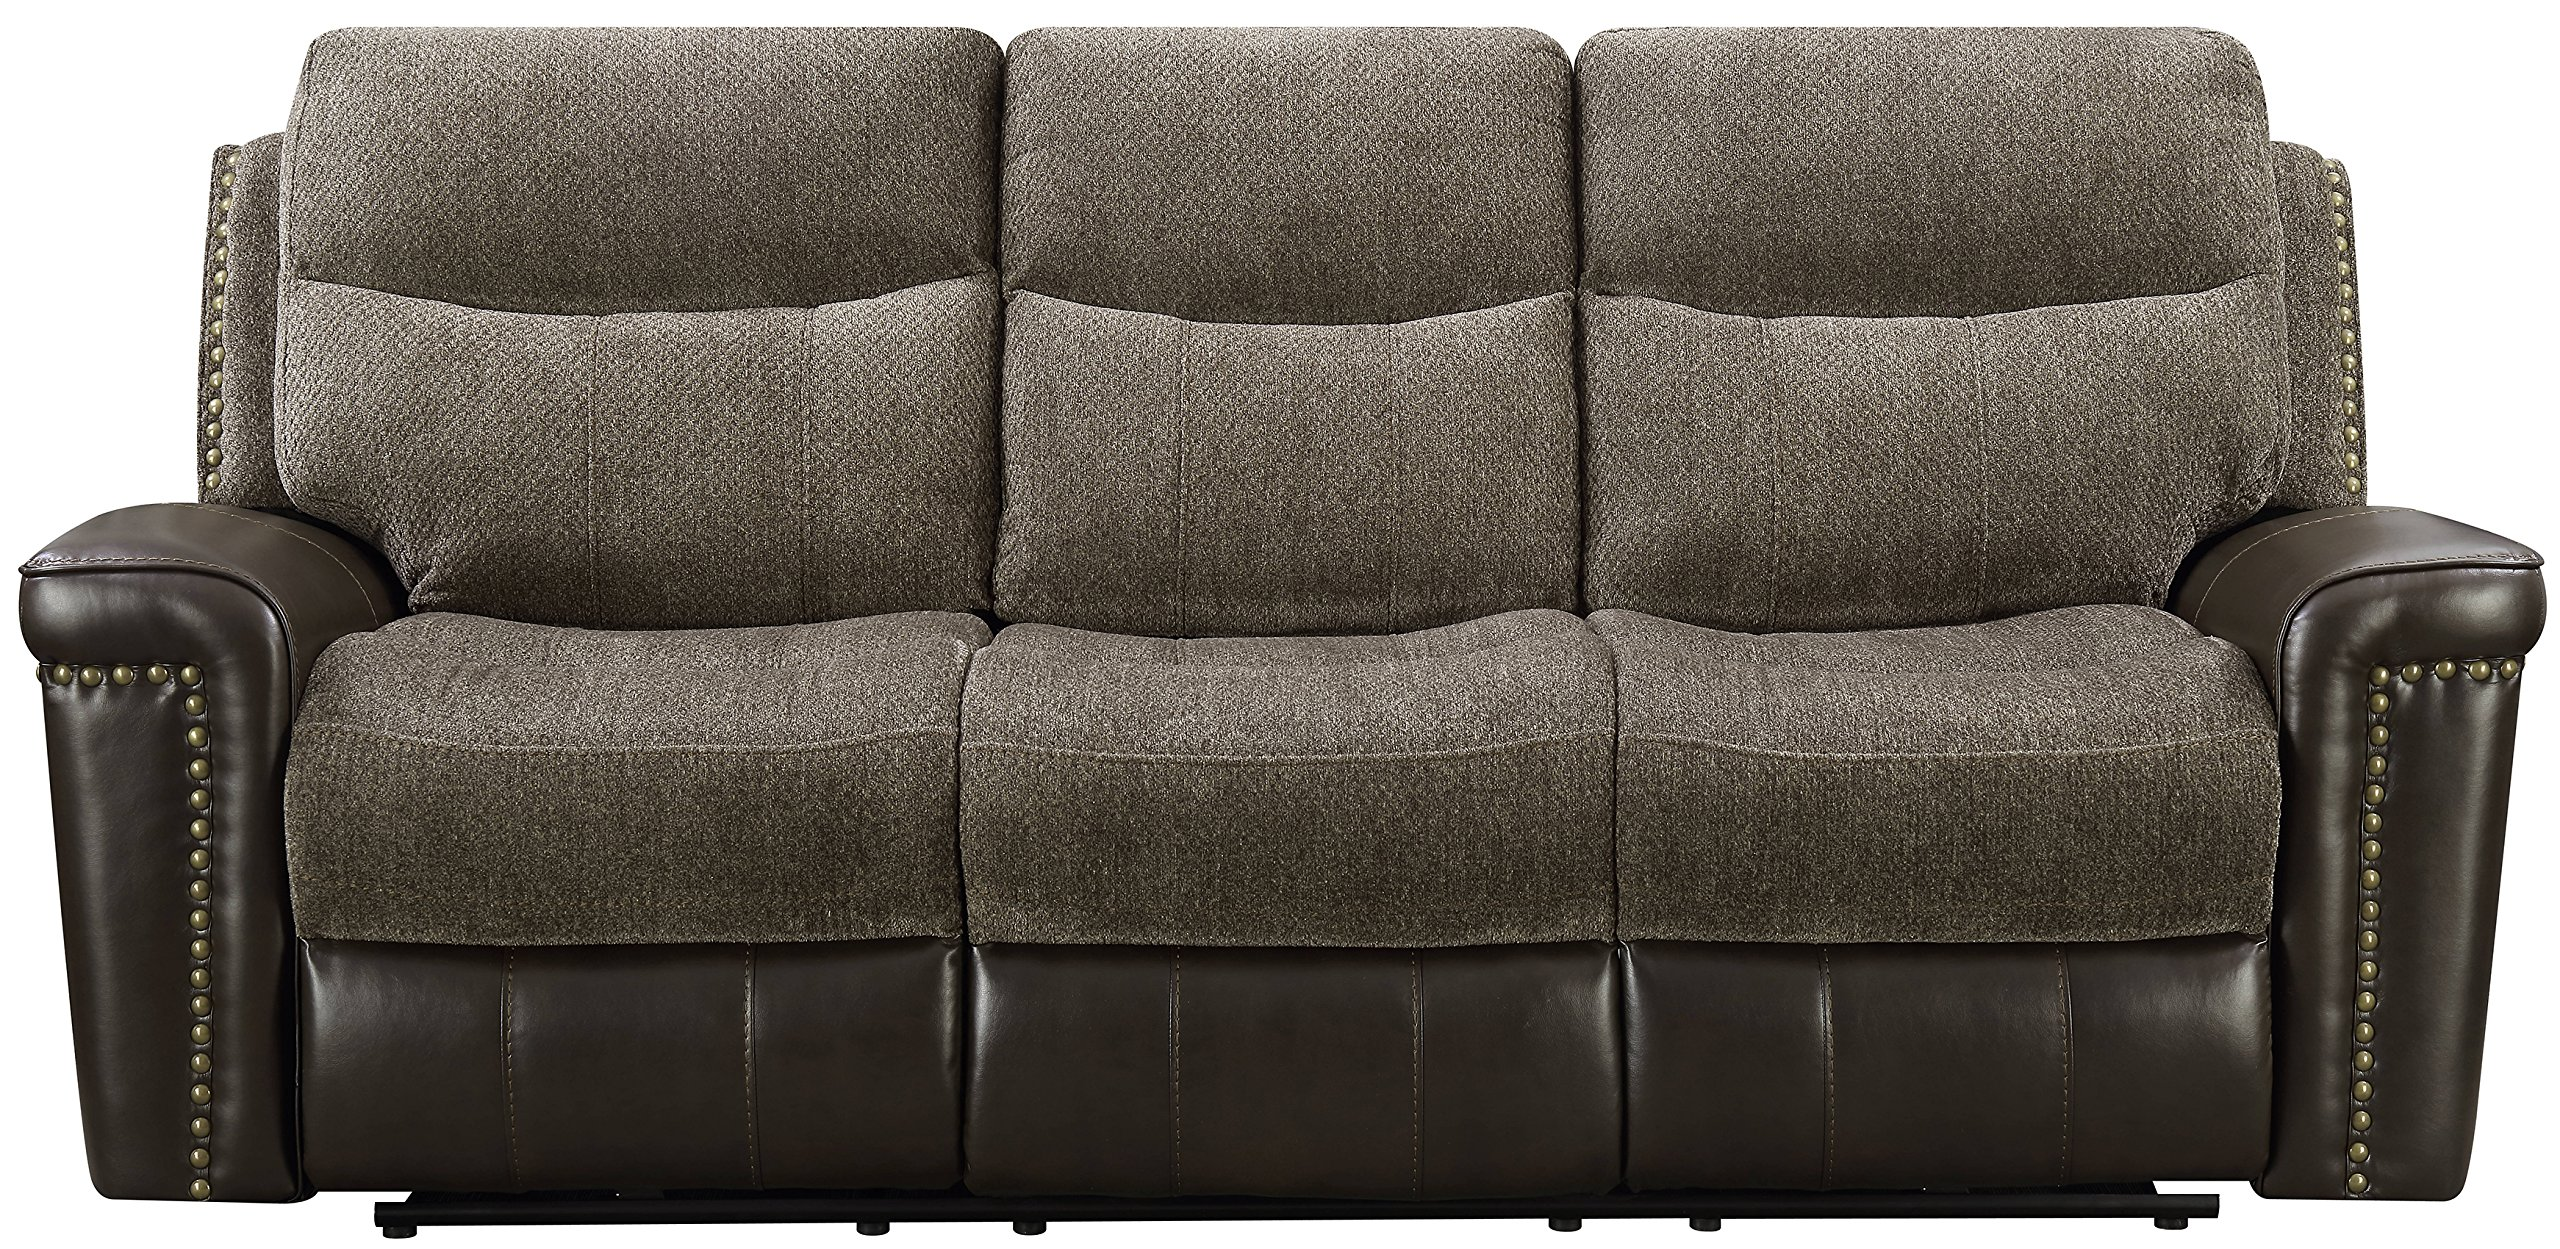 Cambridge 98532DRS-BR Modena Double Reclining Sofa, Brown